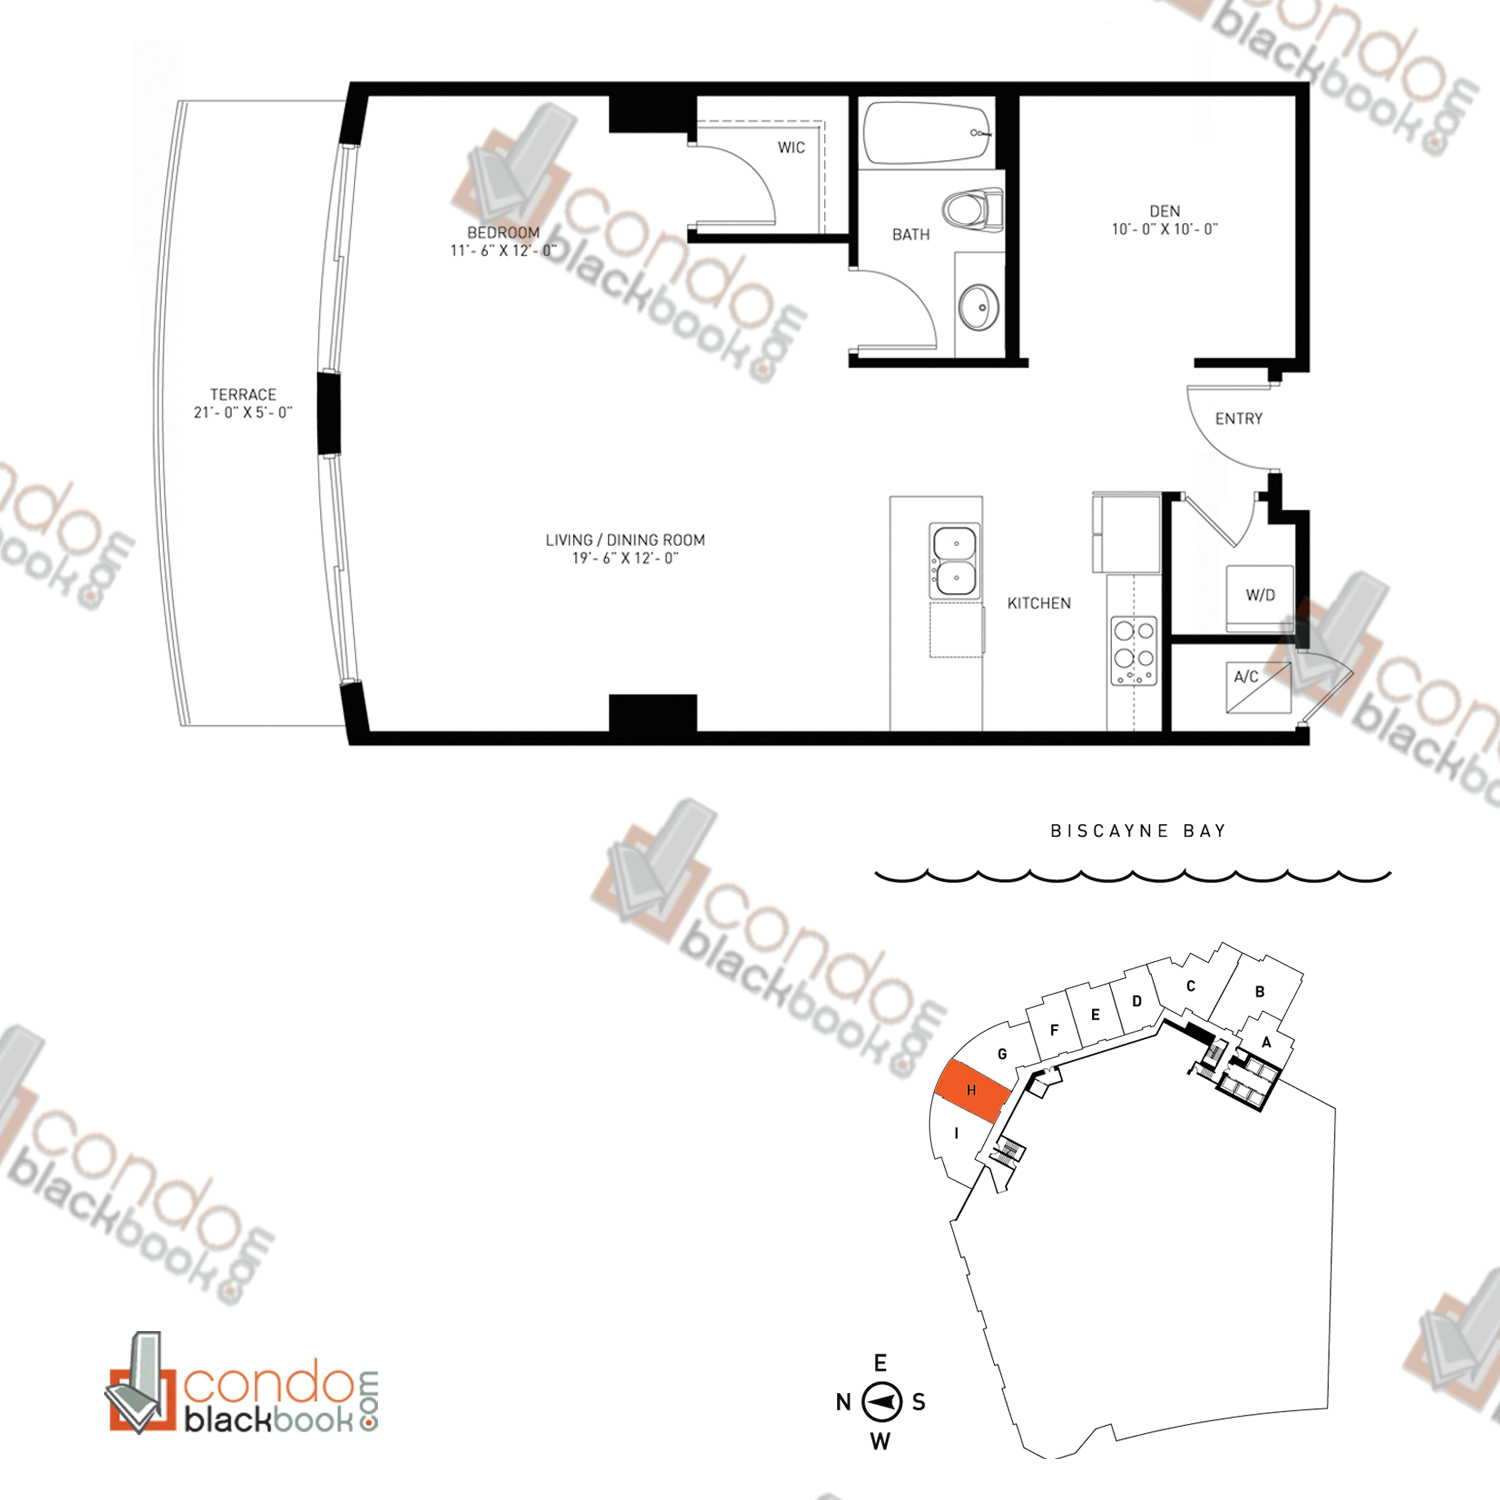 Floor plan for Quantum on the Bay Edgewater Miami, model Loft_H, line 08S, 1/1+Den bedrooms, 829 sq ft